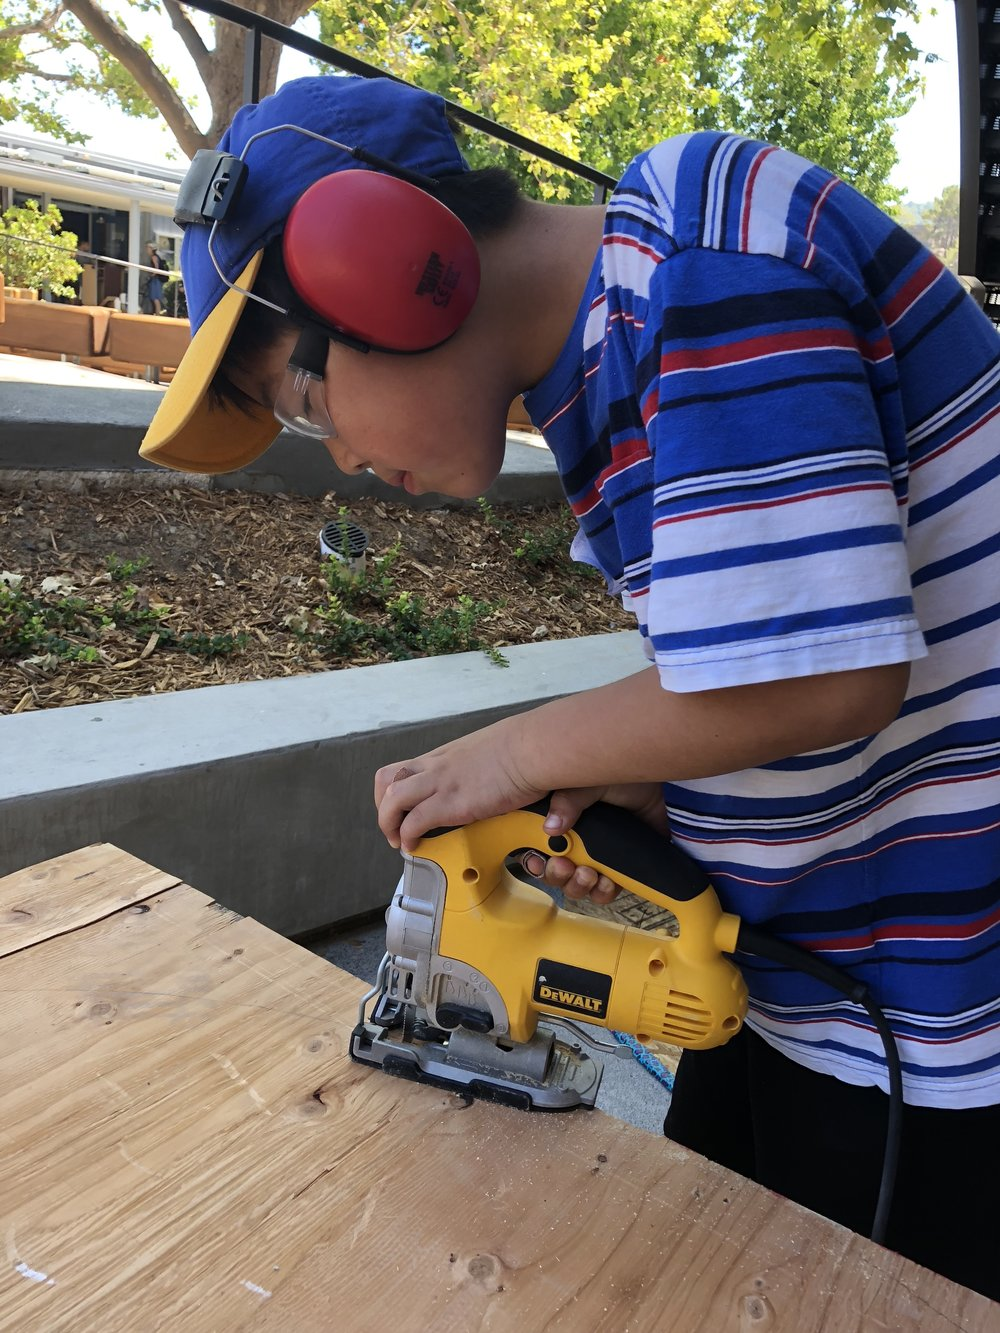 Harry Potter Day 3 Week 5 Mark School Tinkering Rotary Engine Diagram Chainsaw Jig Saw